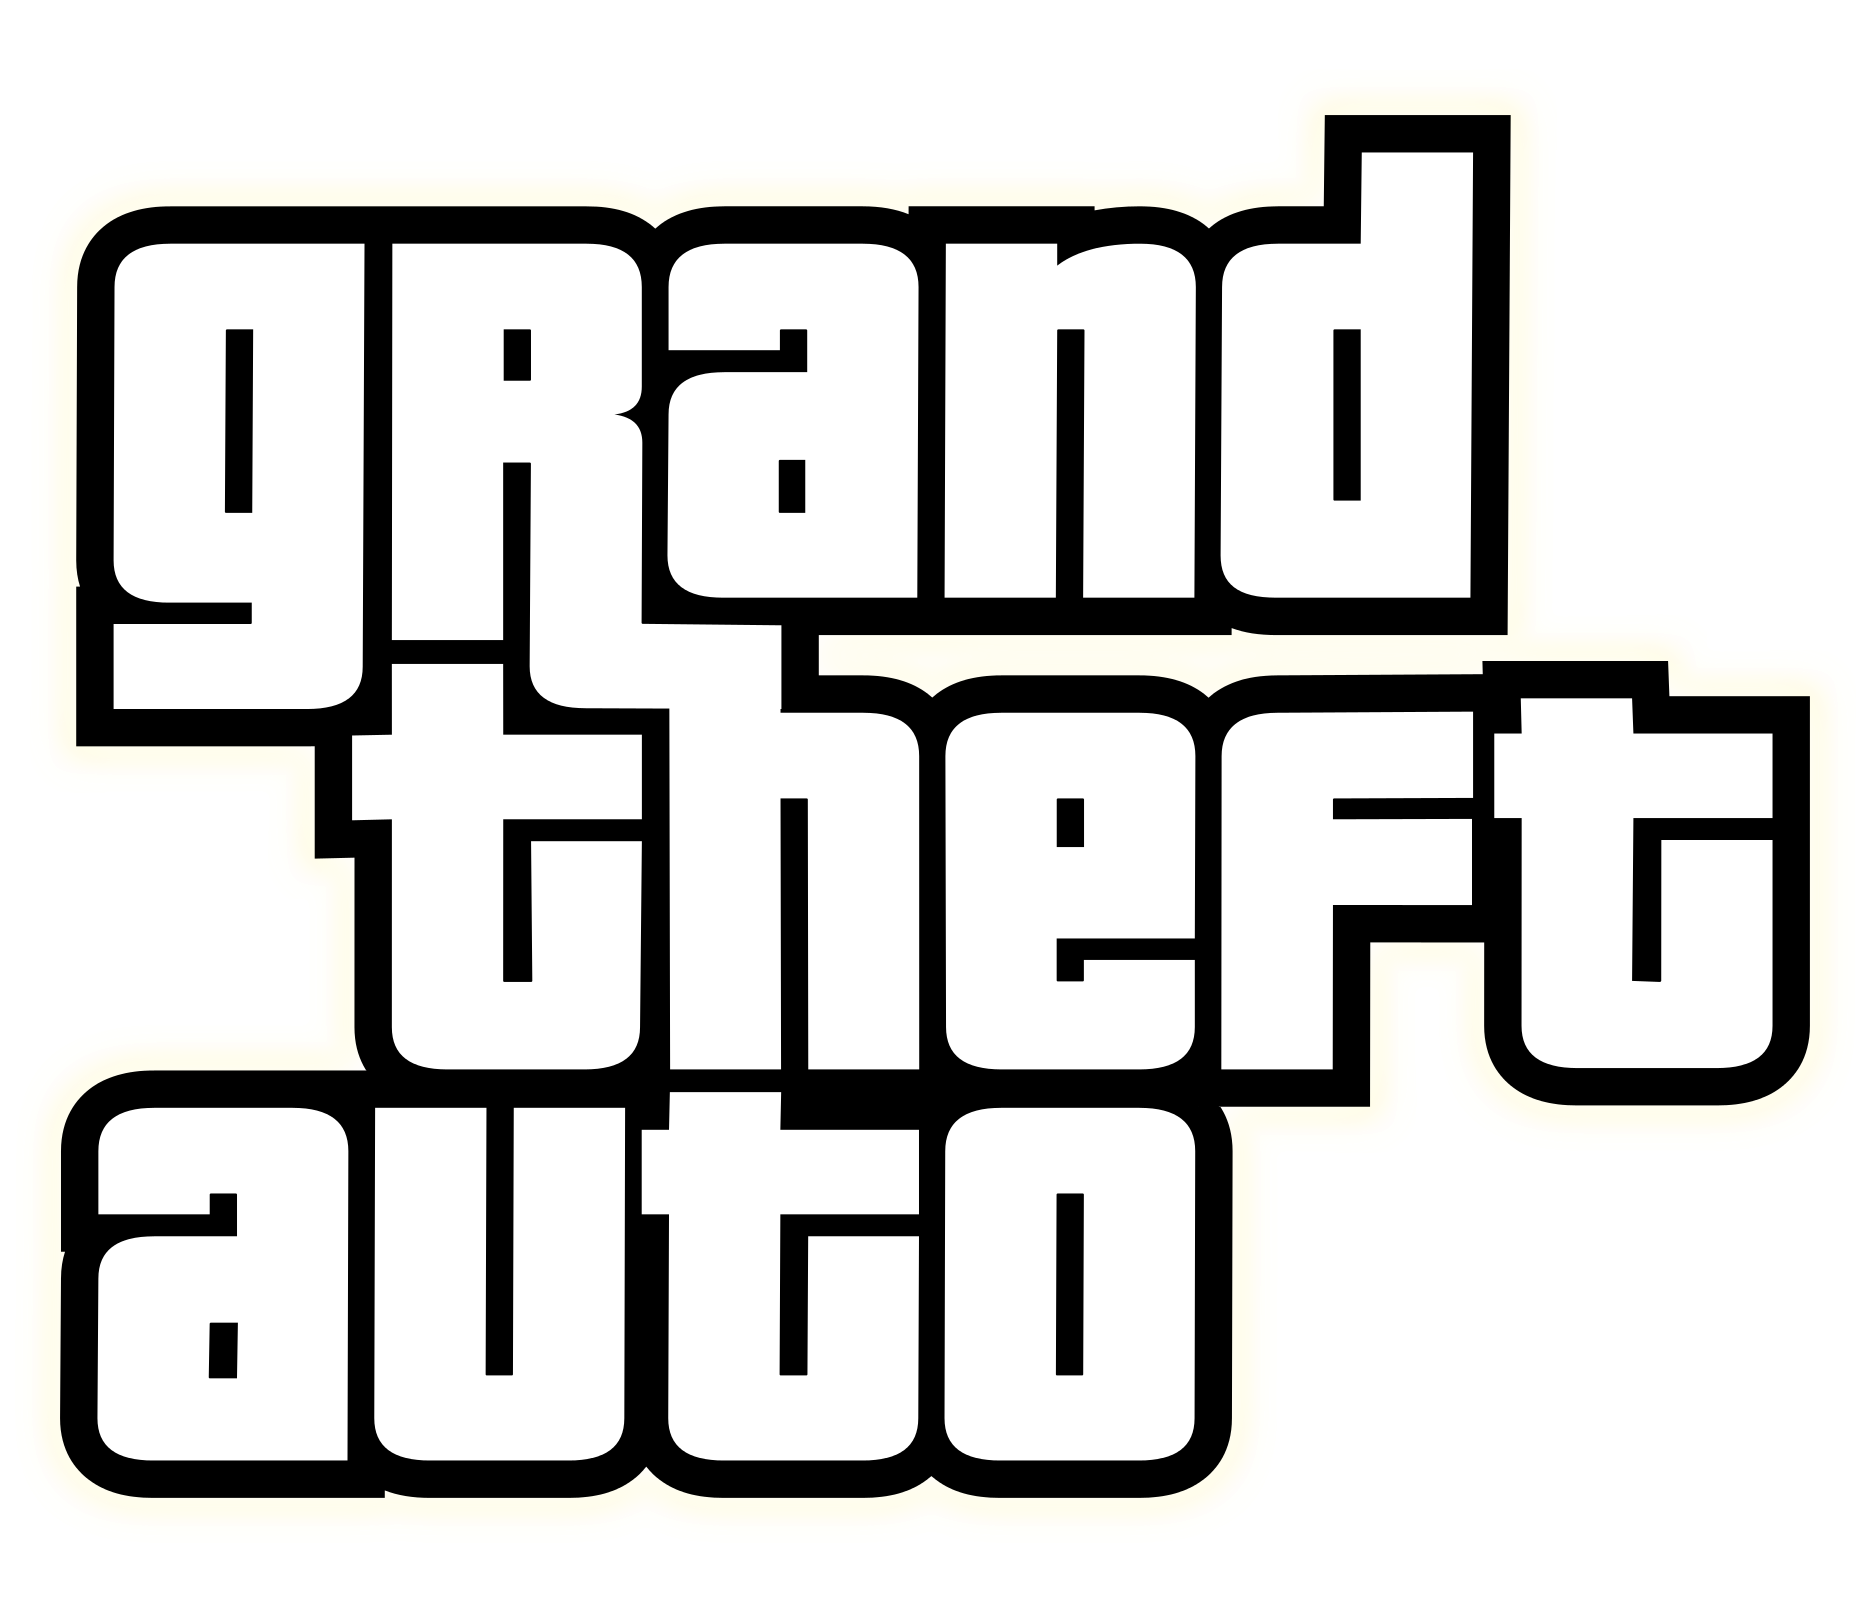 Car Parts Tutorial additionally Grand Theft Auto   D1 81 D0 B5 D1 80 D0 B8 D1 8F  D0 B8 D0 B3 D1 80 moreover  on gta 4 infernus